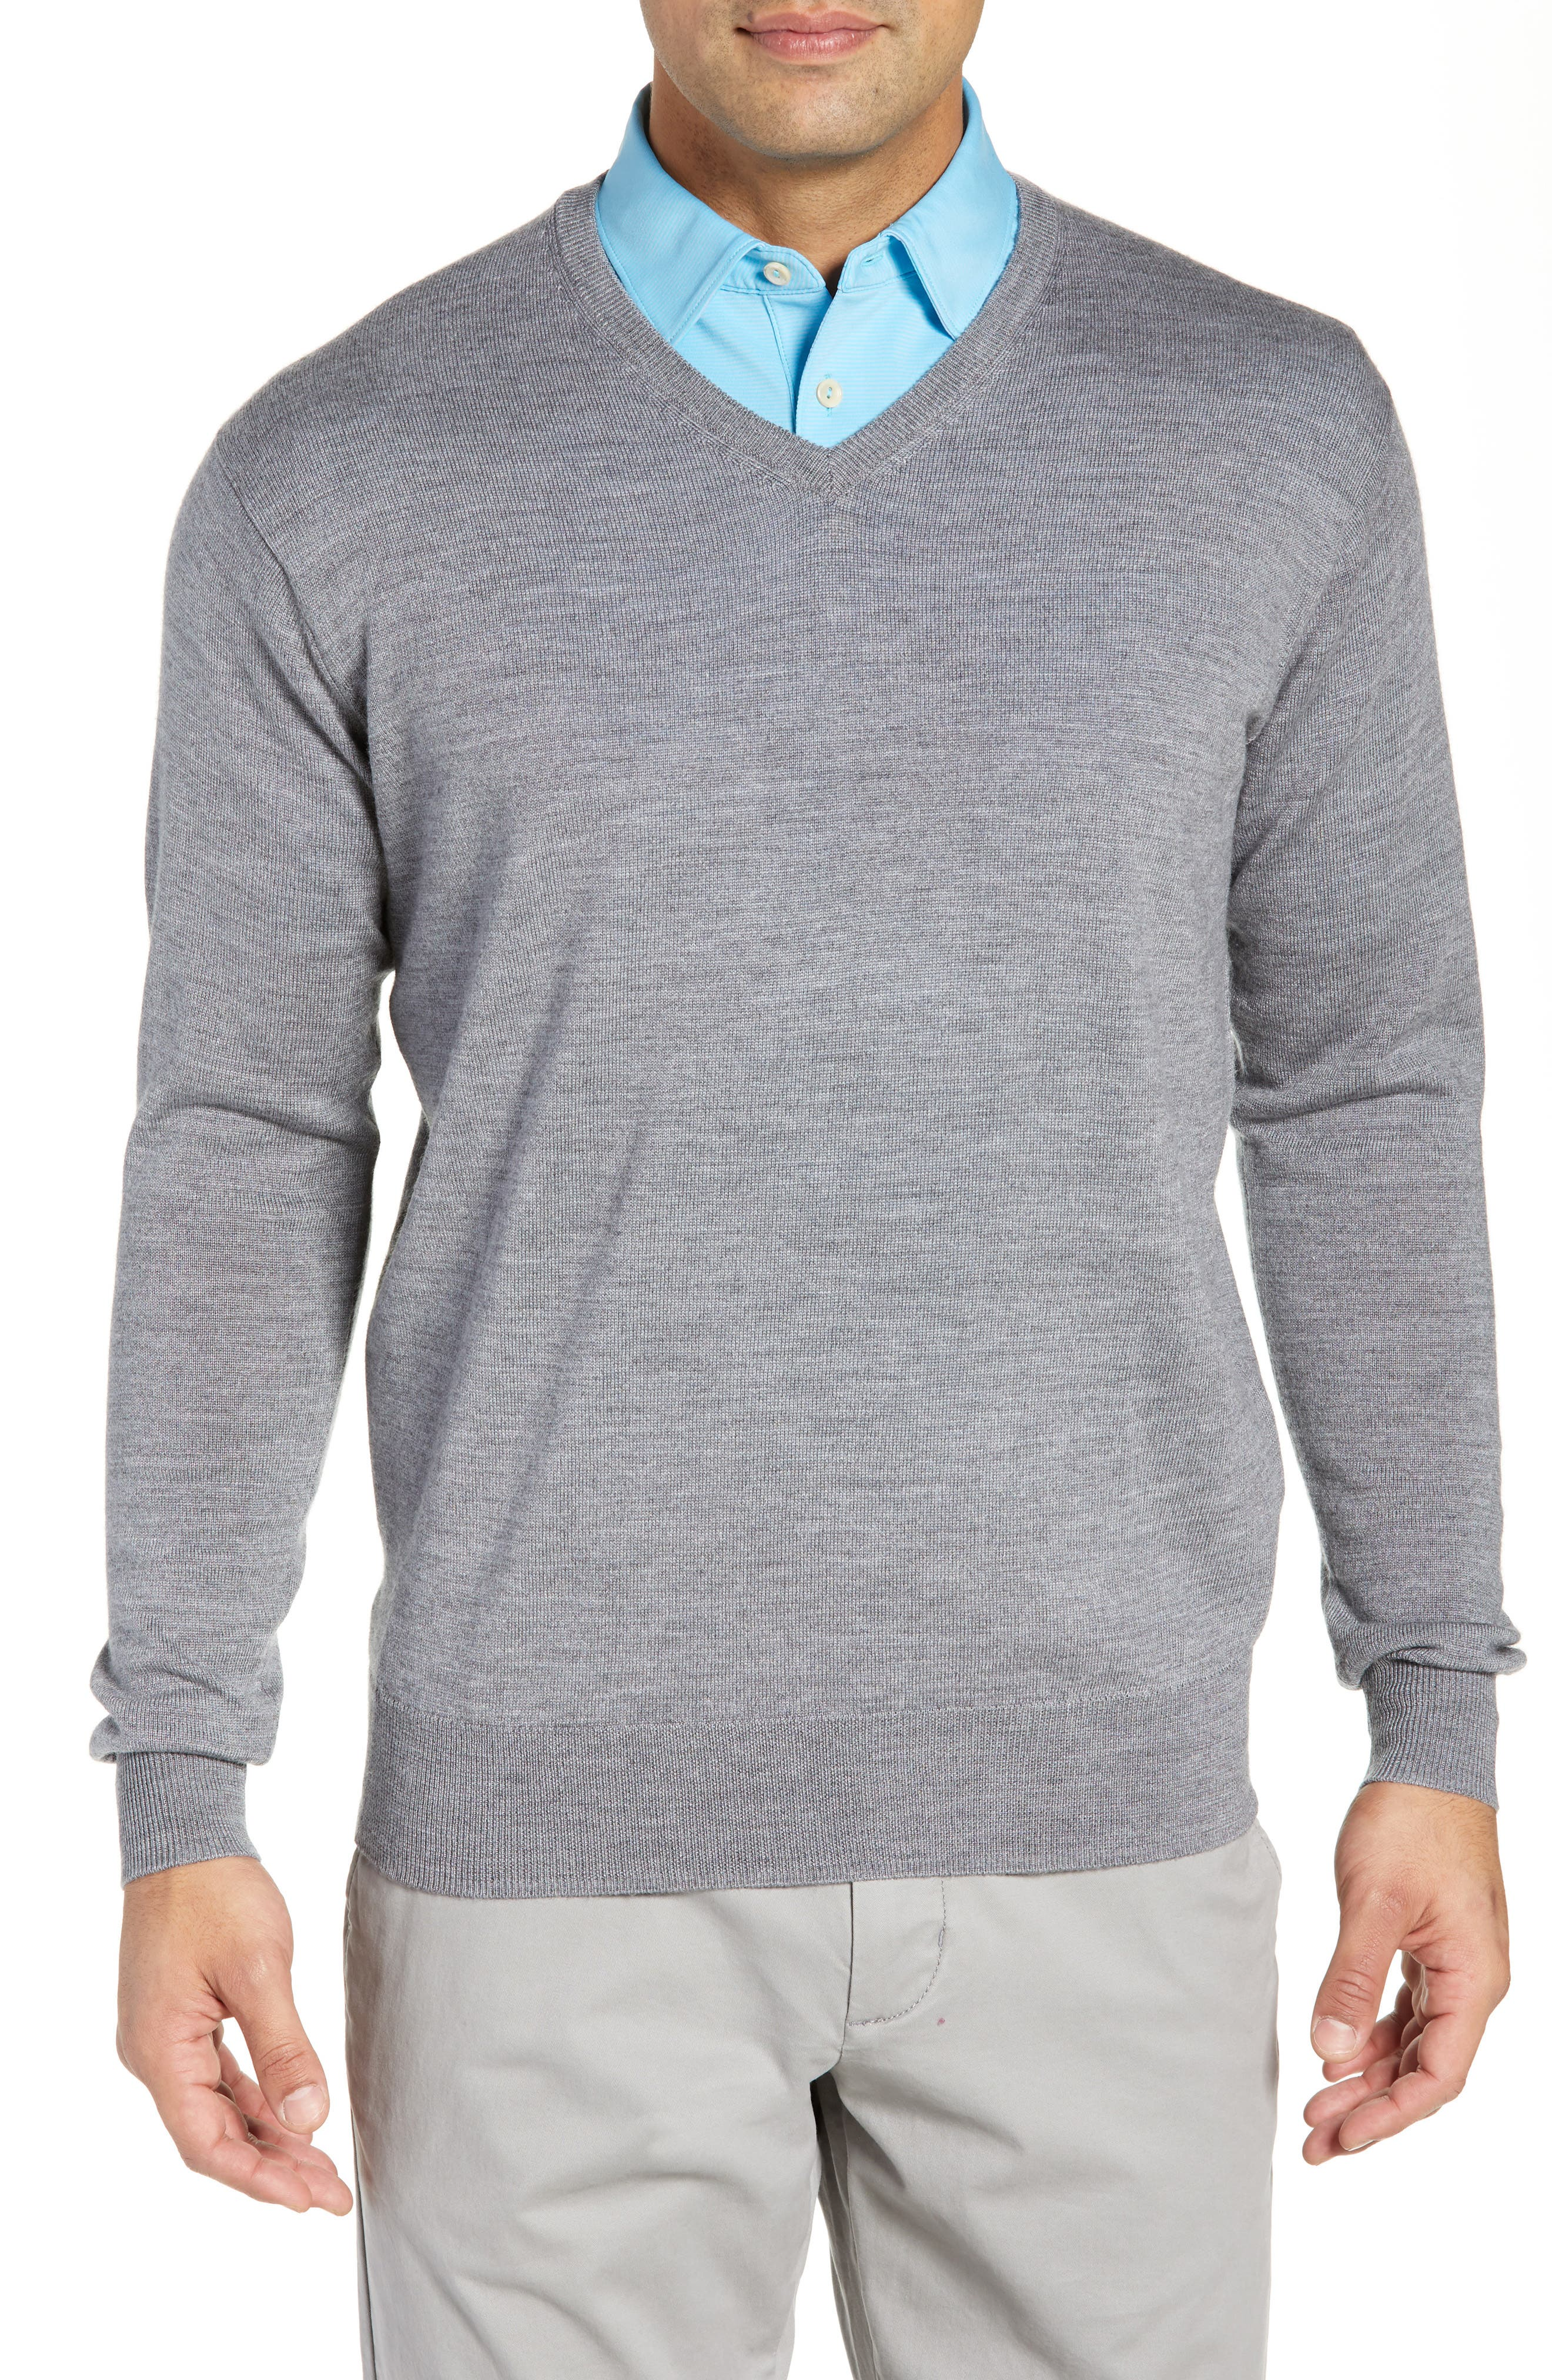 Crown Wool & Silk V-Neck Sweater,                         Main,                         color, 010